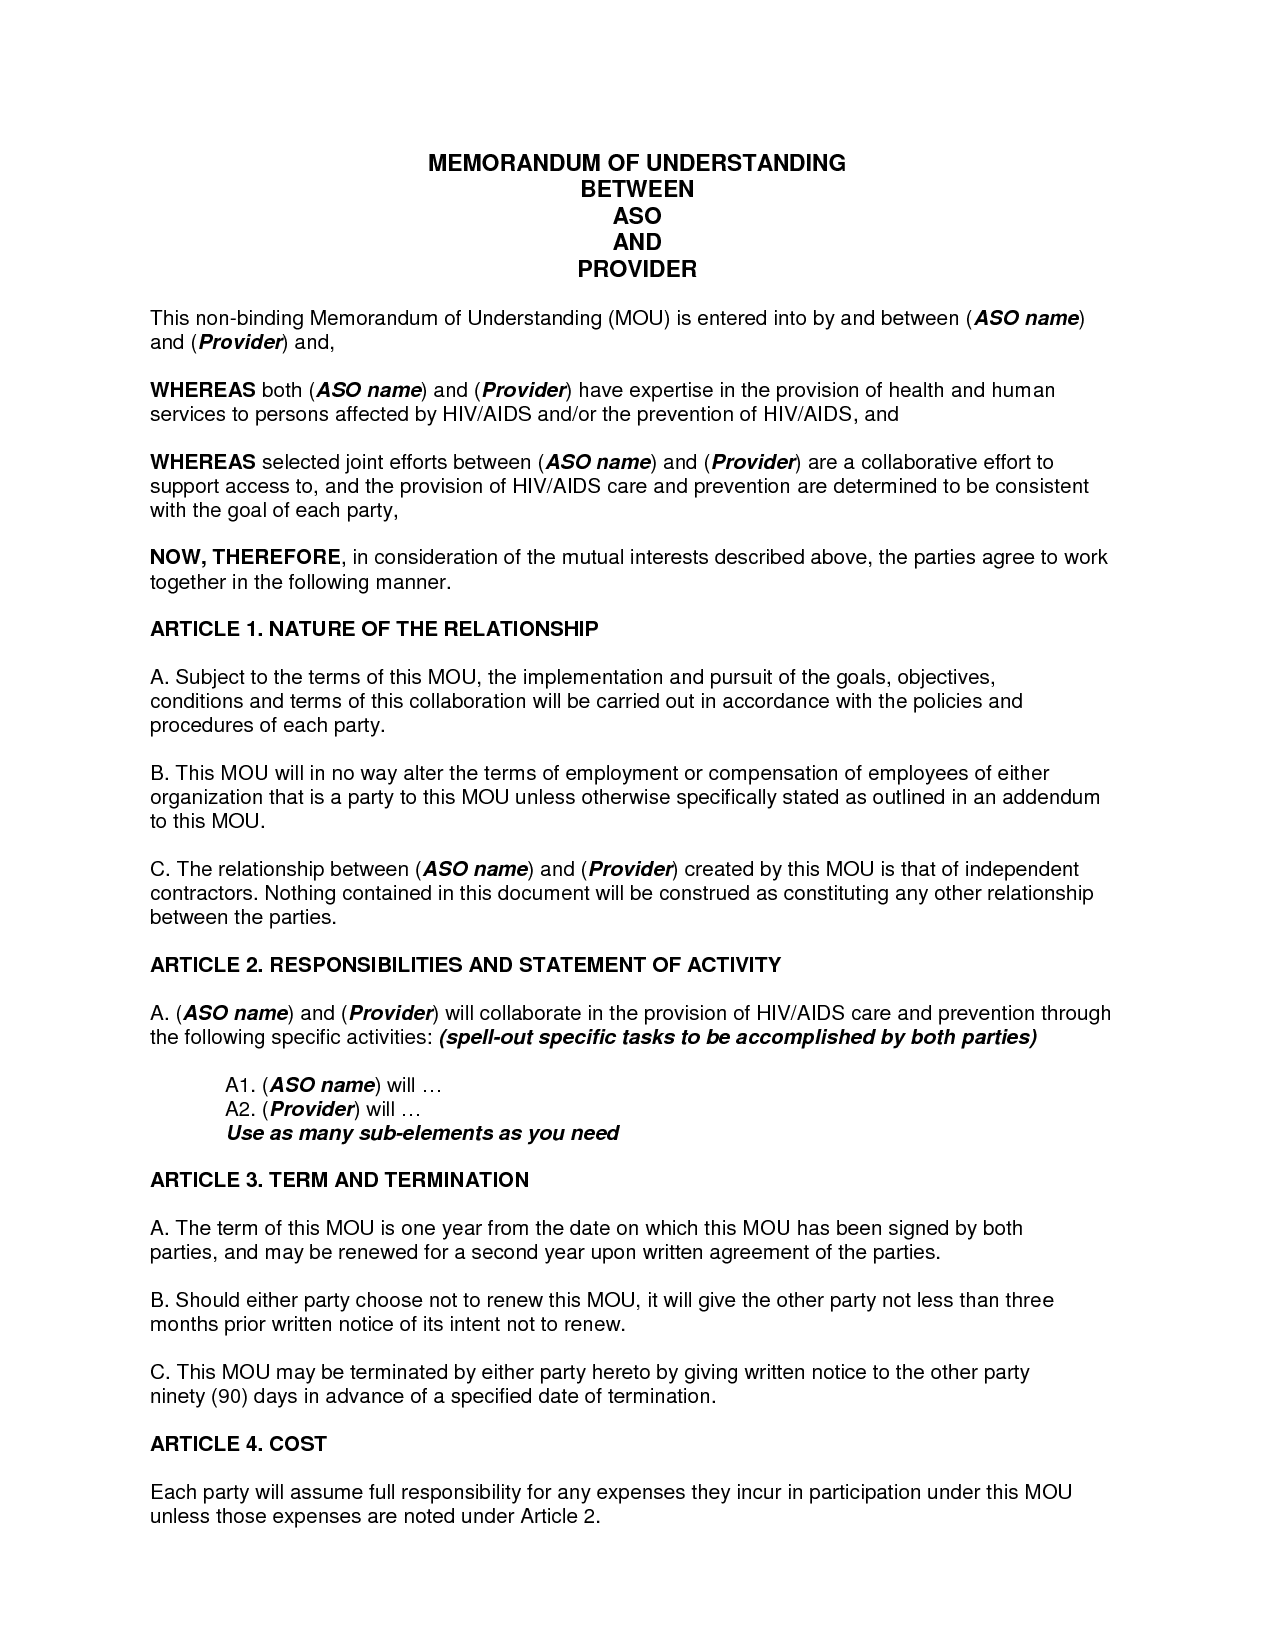 sample memorandum of understanding business partnership doc by m o u sample